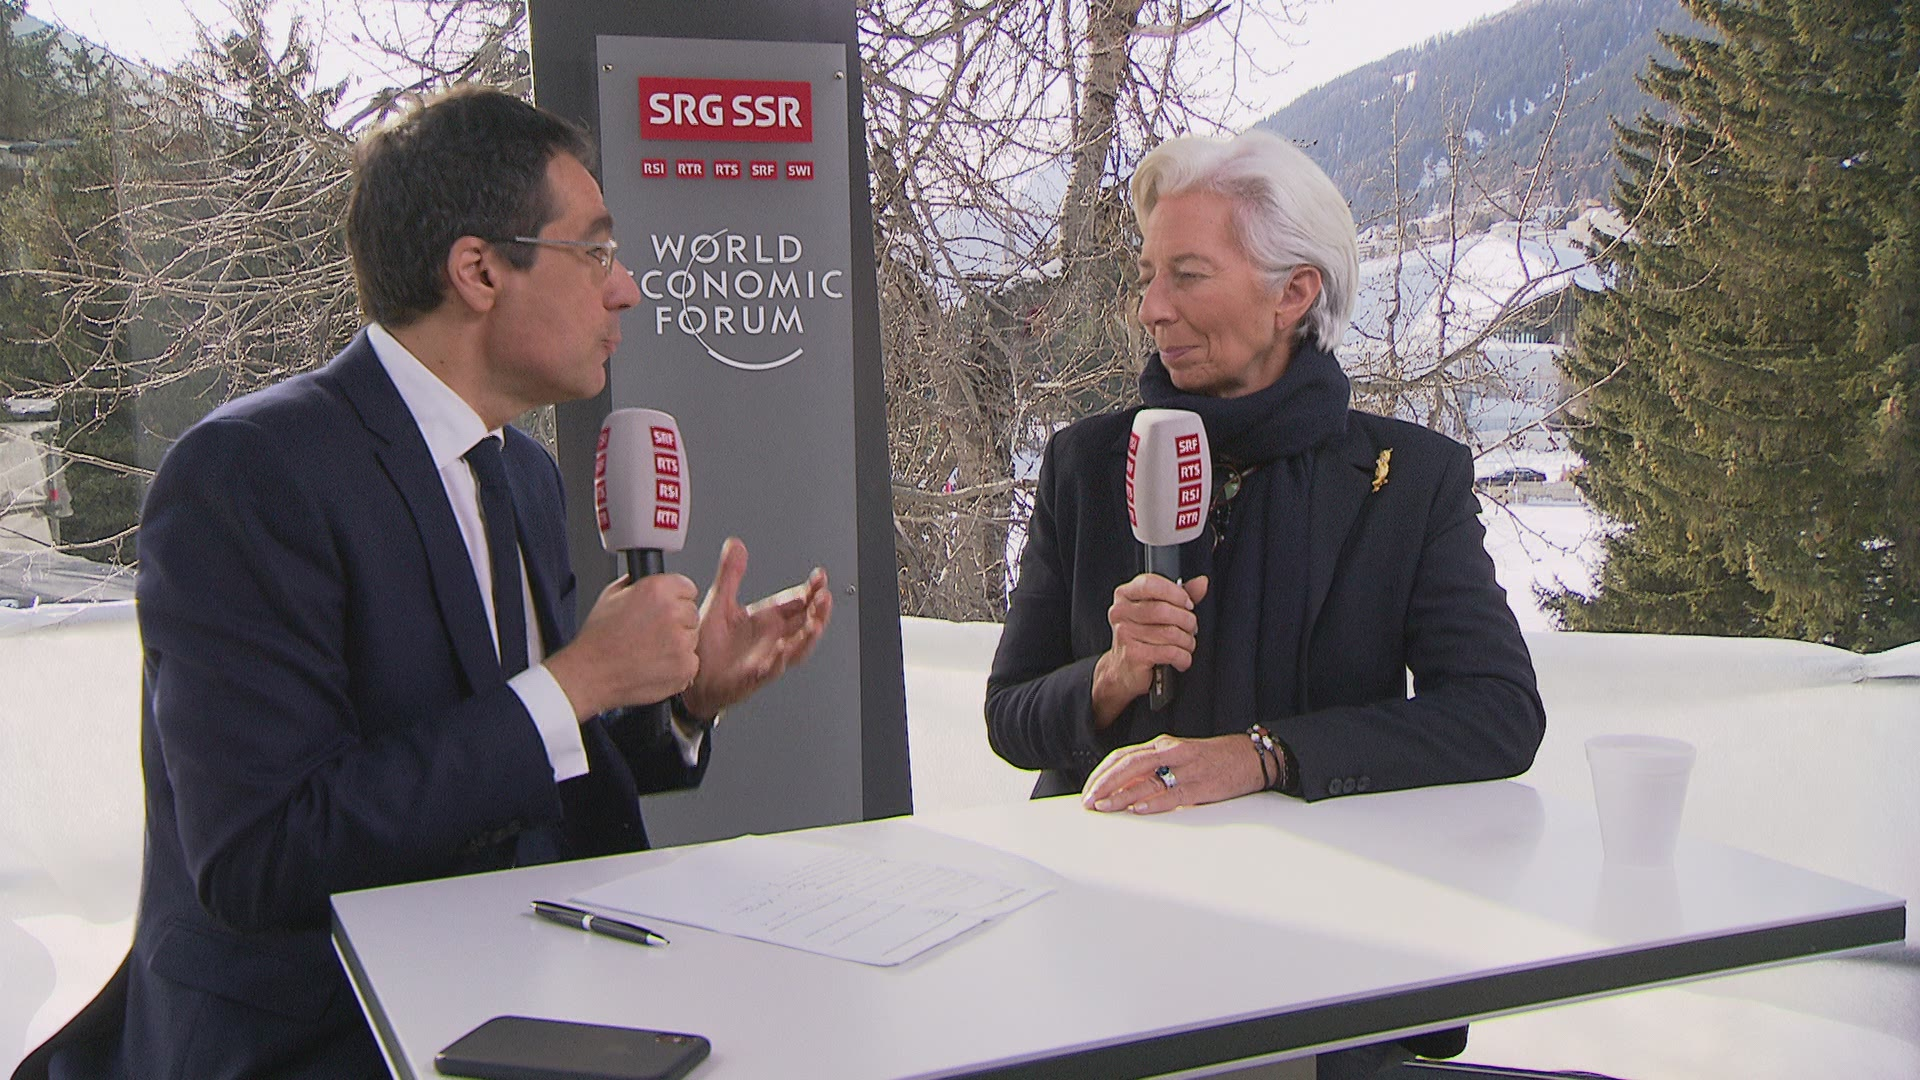 Interview de Christine Lagarde au Forum de Davos.